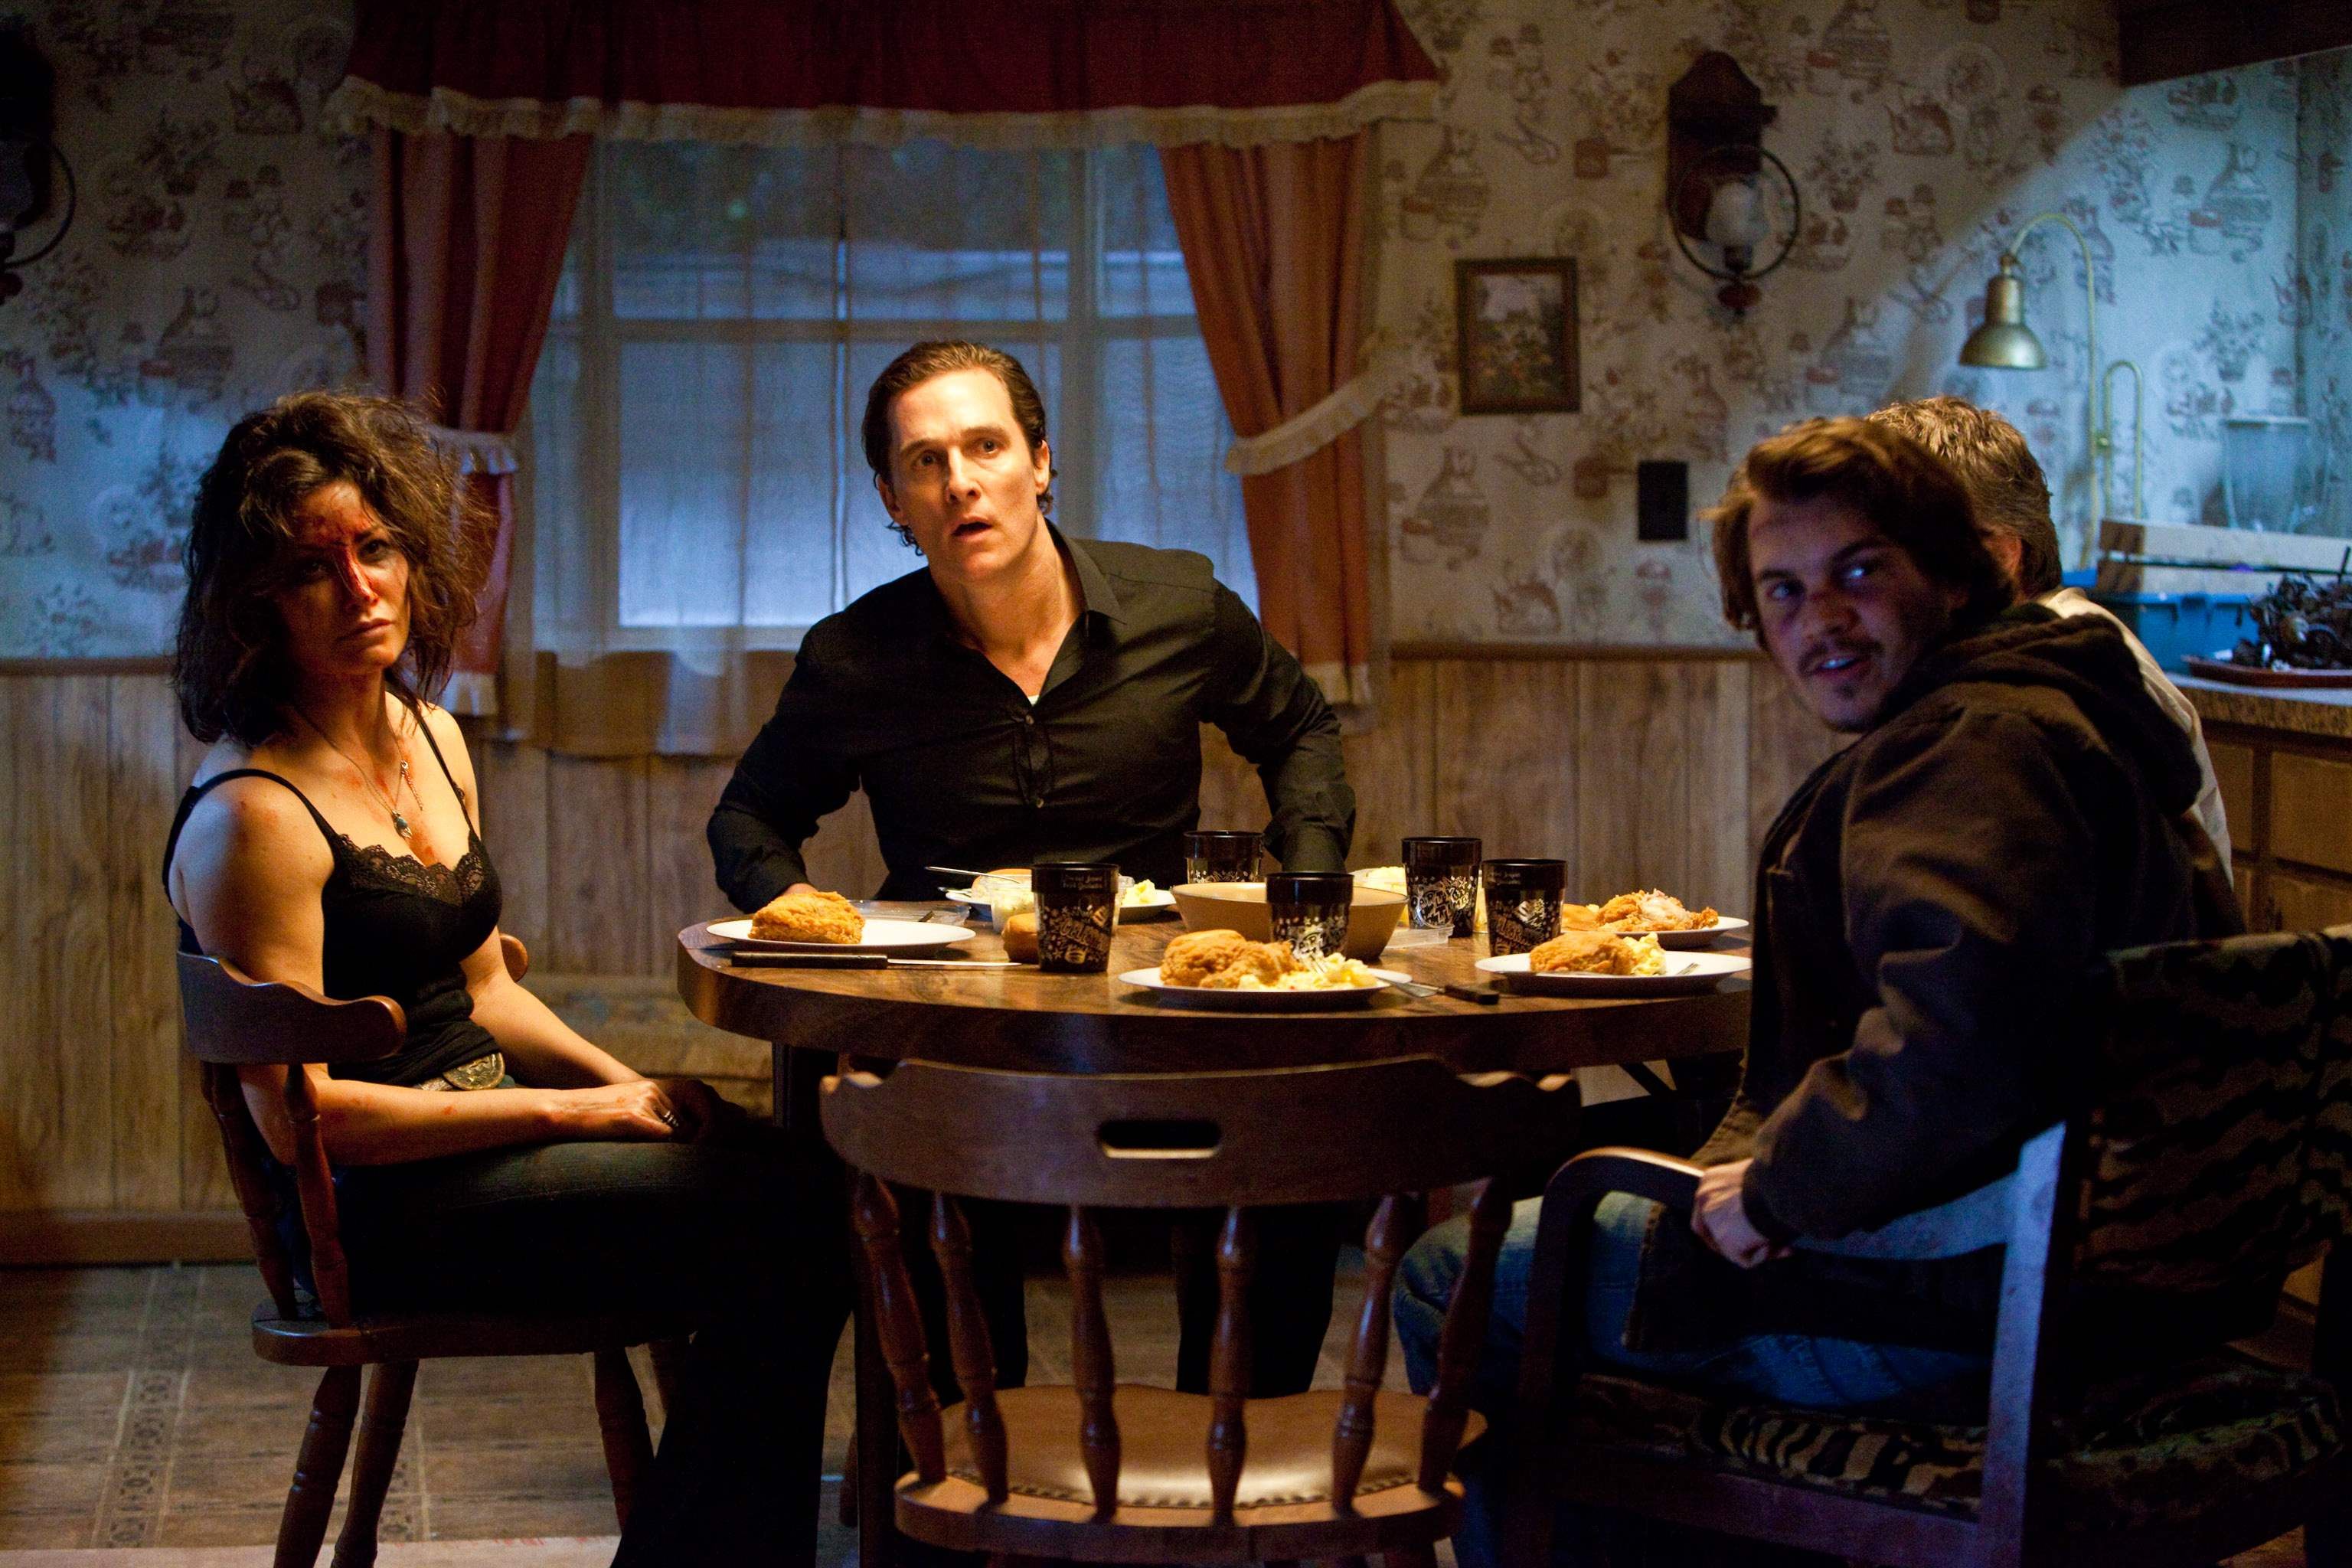 Family dinner in Killer Joe